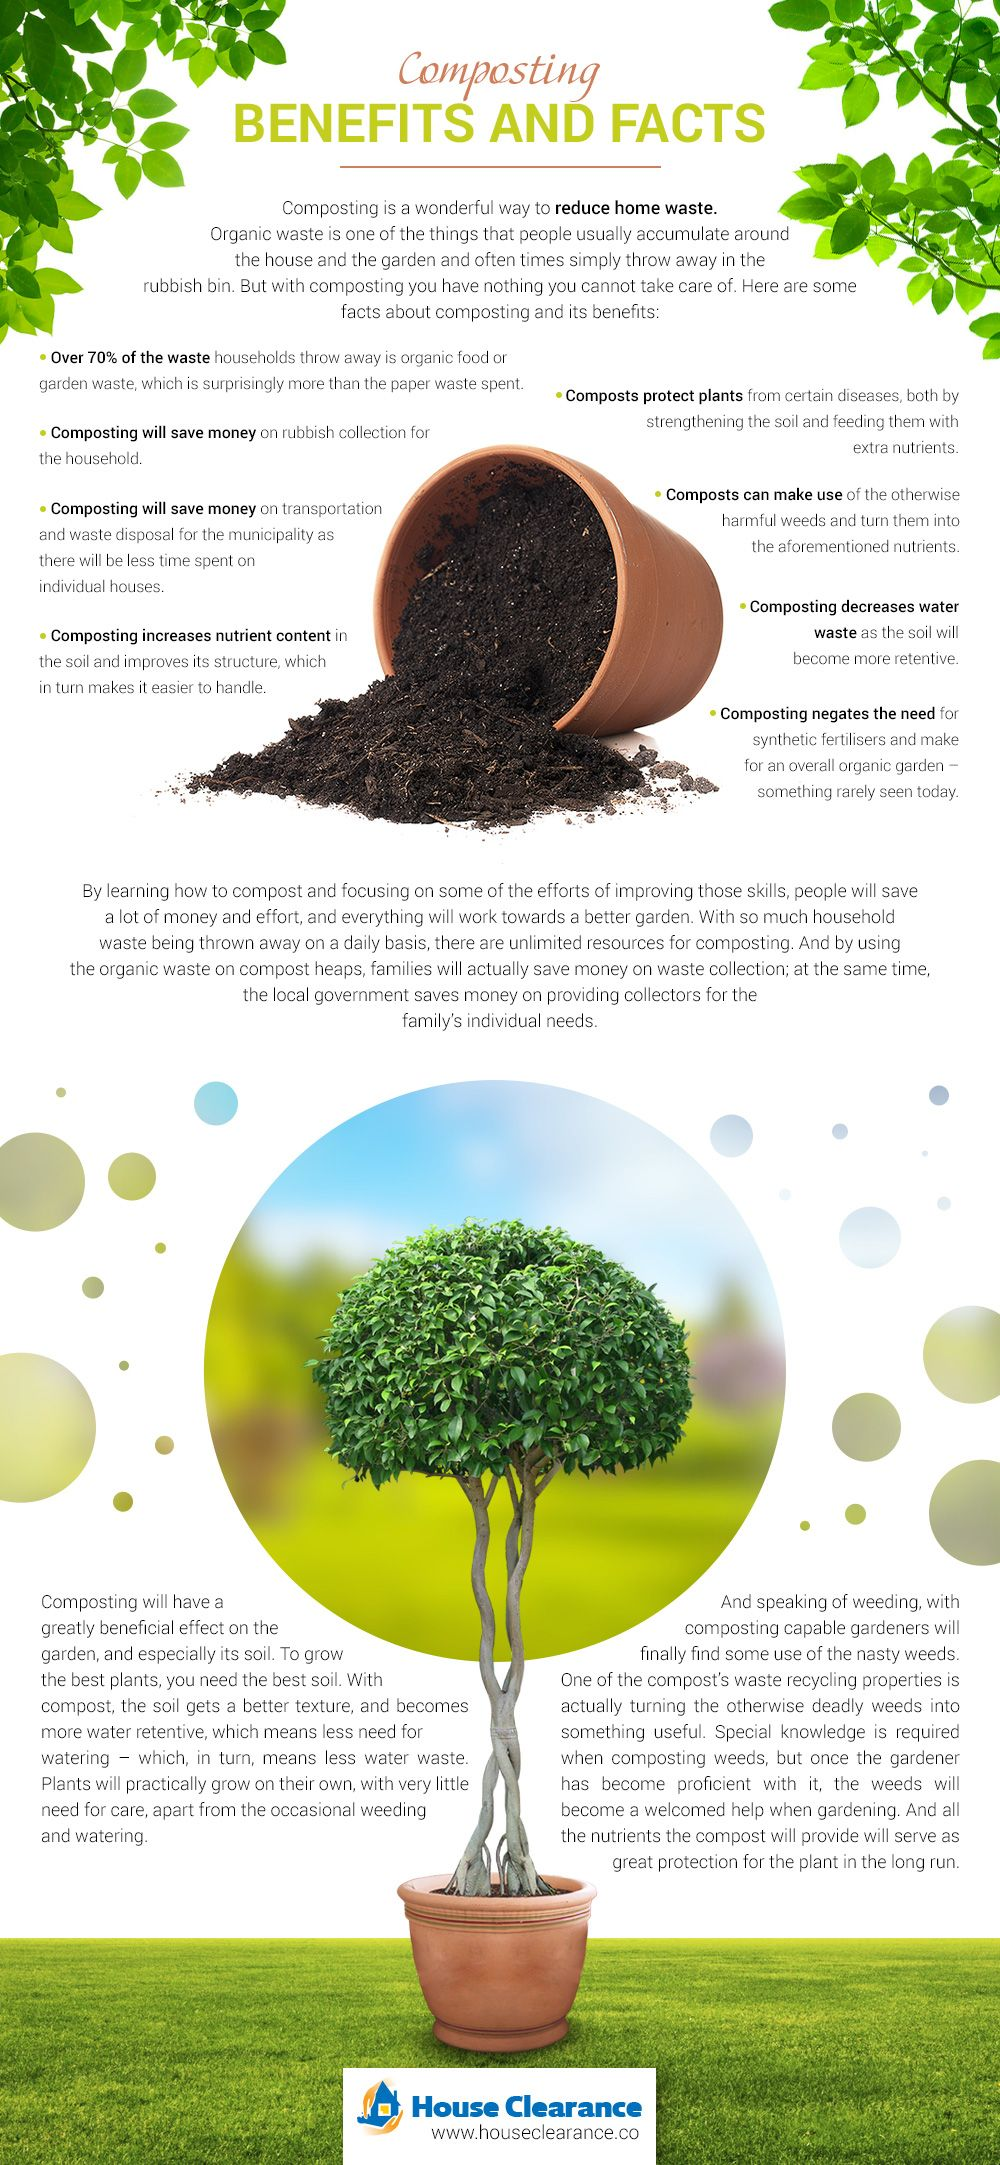 beauteous trees to plant near house. Make your garden beauteous again via some helpful composting tips and  advises